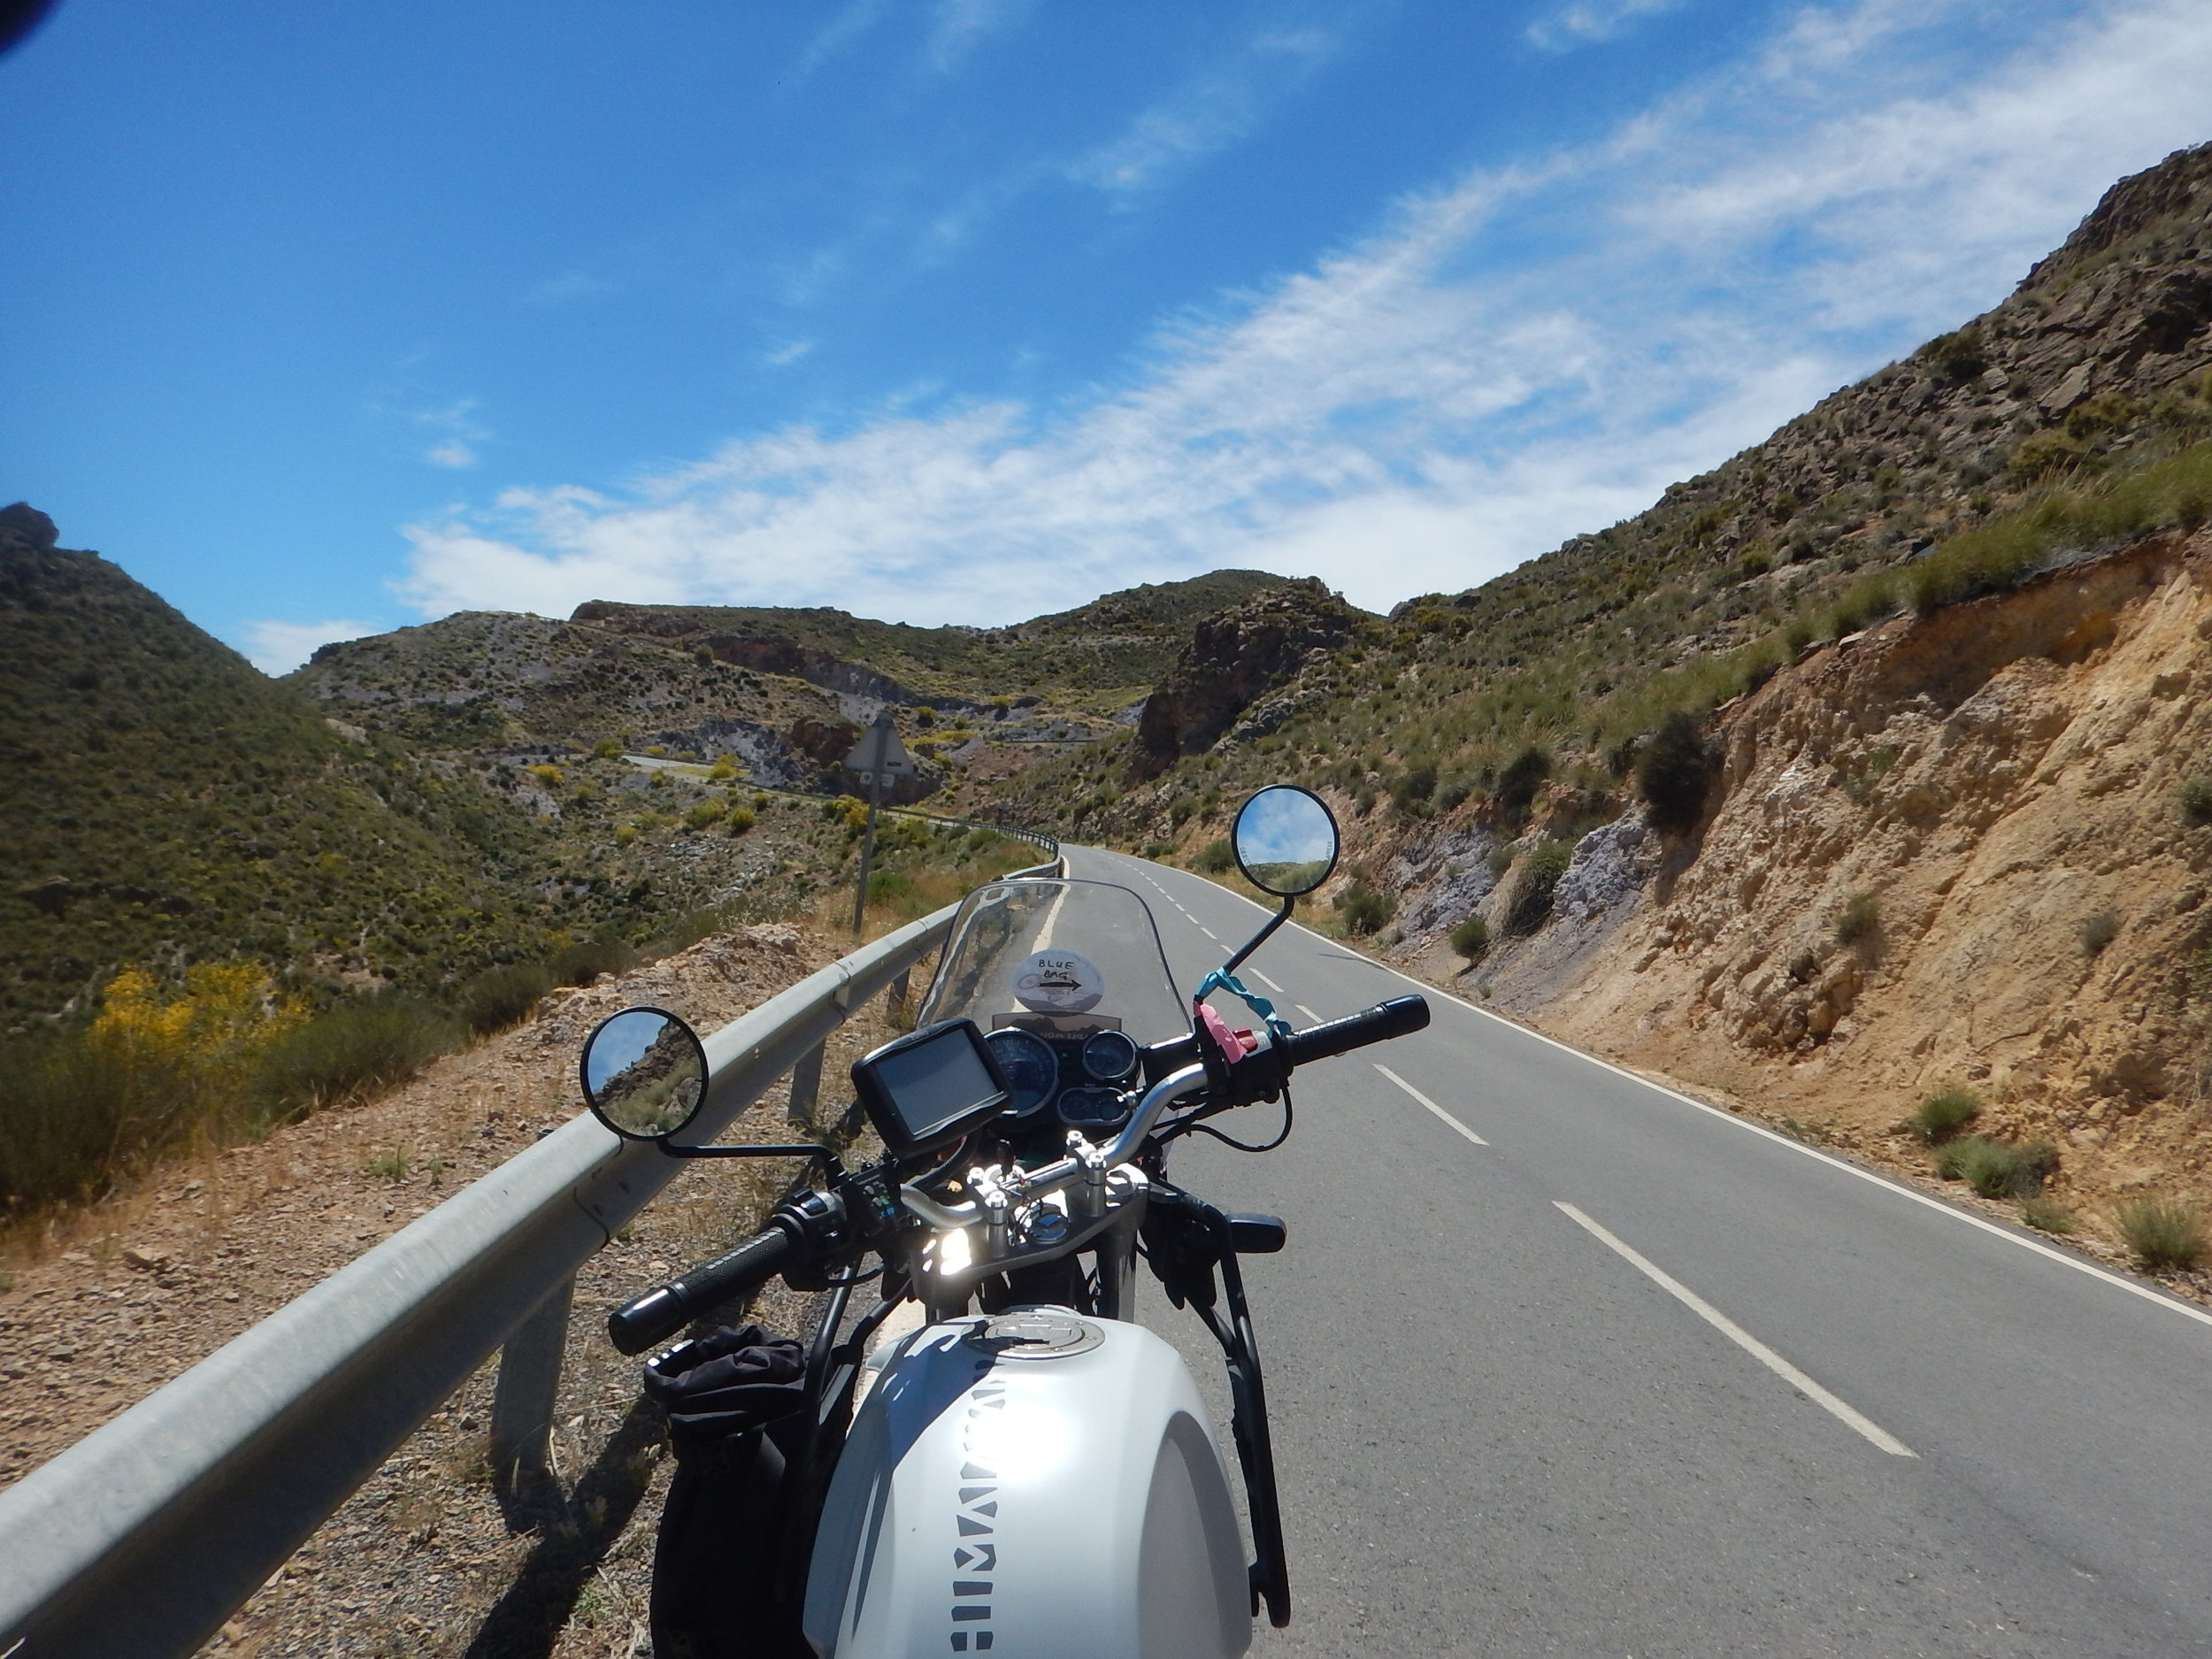 looking up at more windy roads.